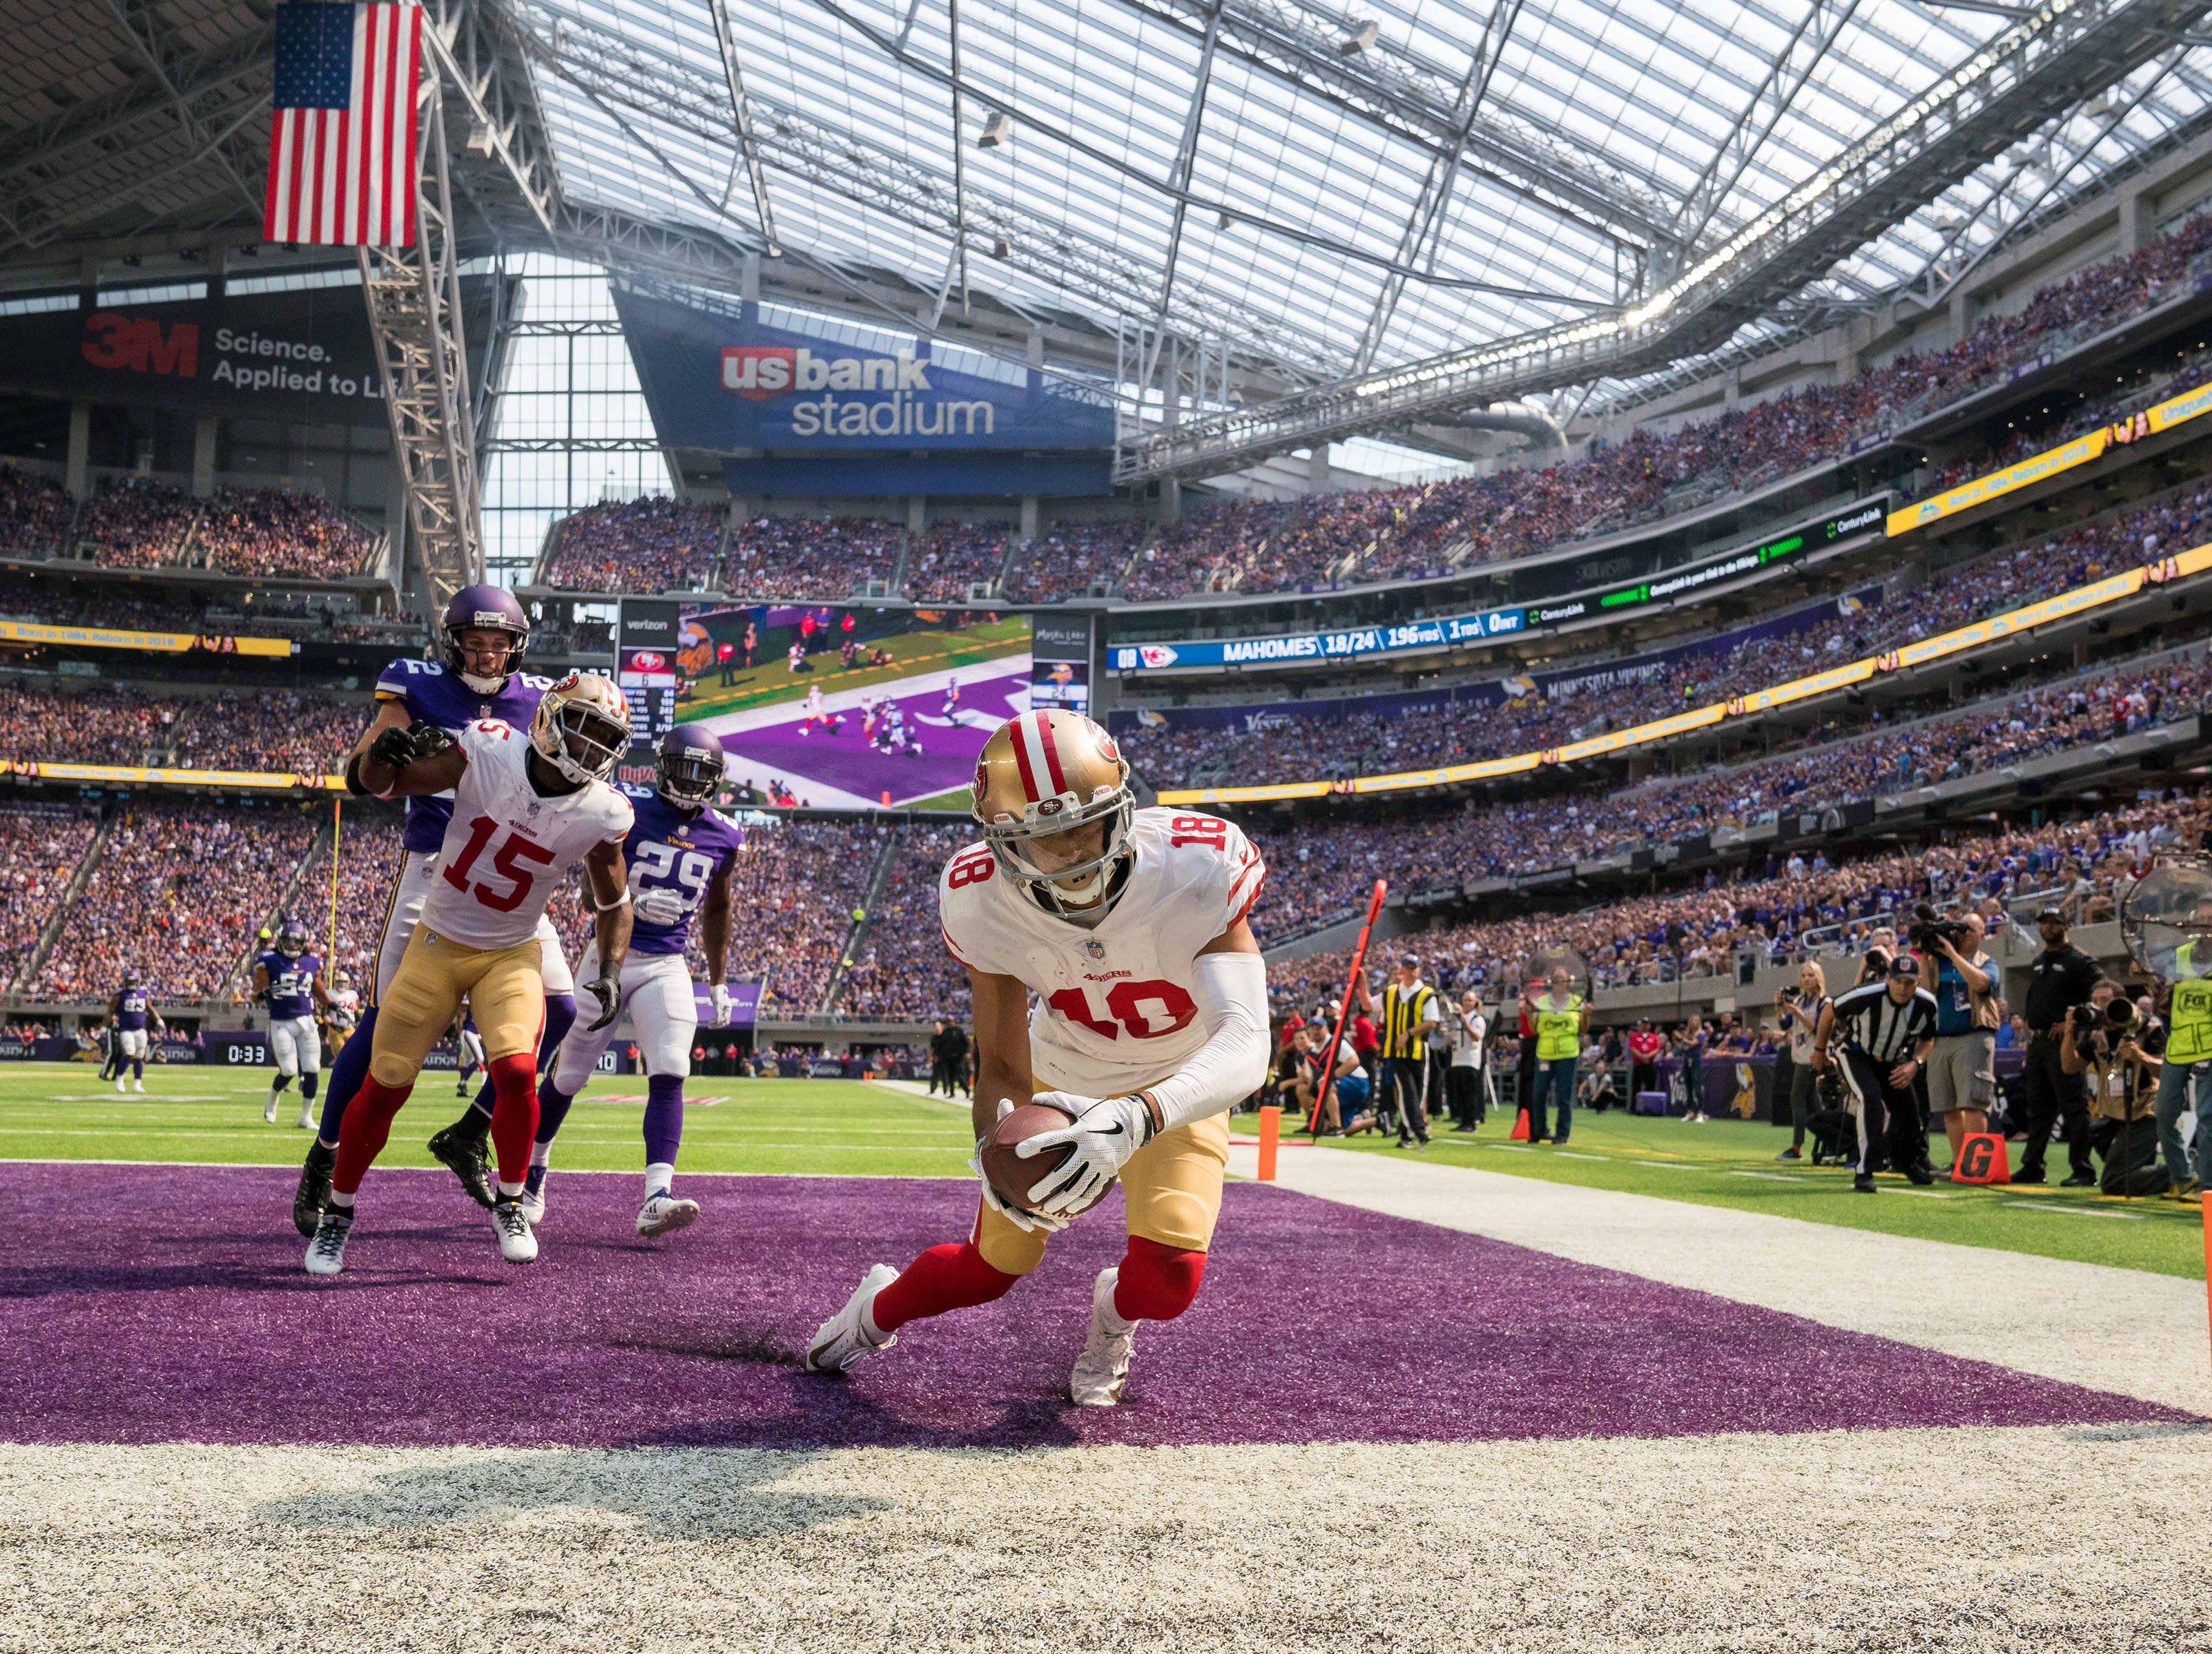 Sept. 9: San Francisco 49ers wide receiver Dante Pettis (18) catches a touchdown in the third quarter against Minnesota Vikings at U.S. Bank Stadium.